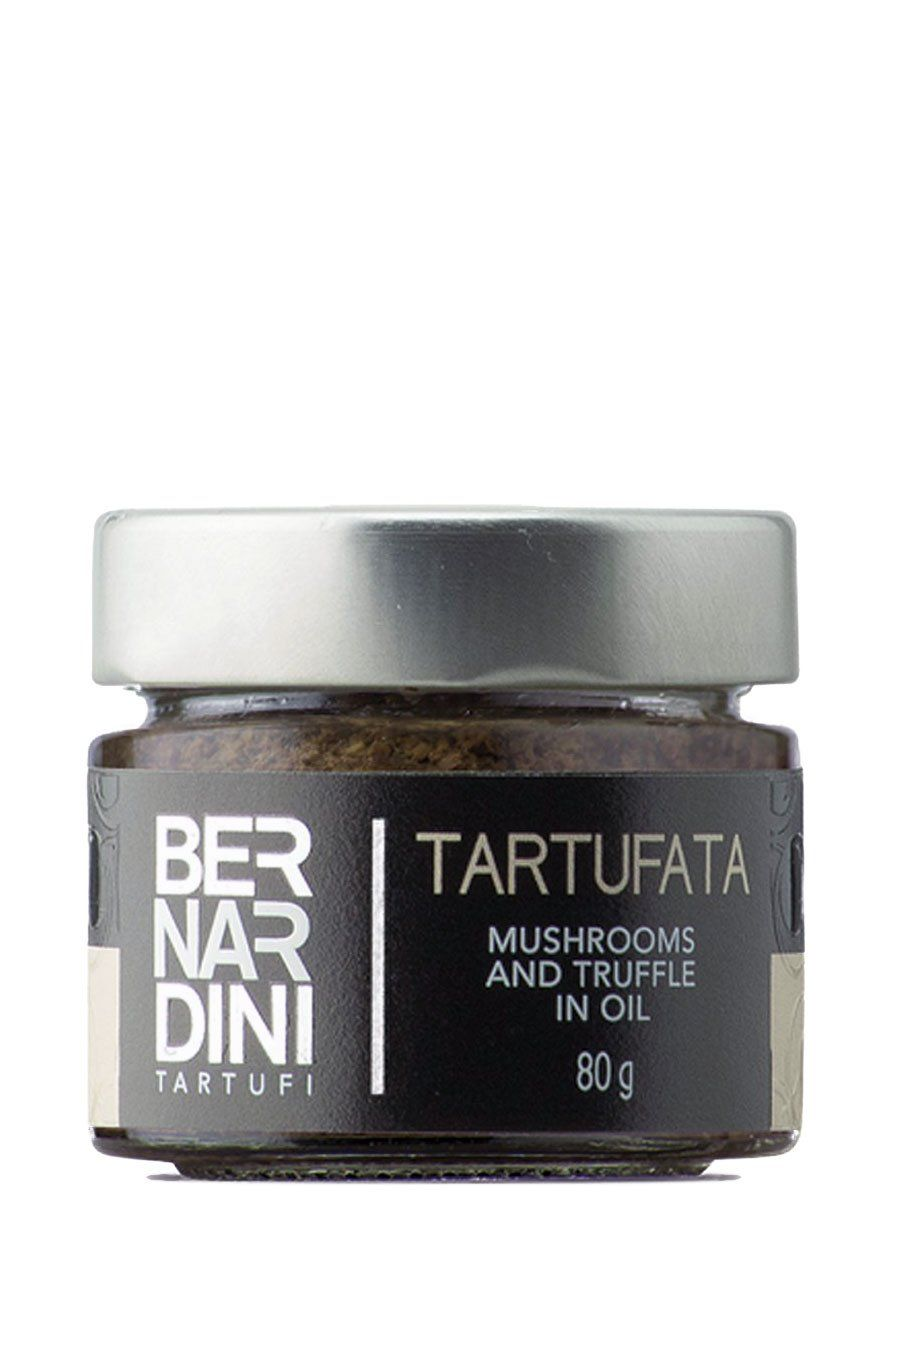 Mushrooms and truffle in oil 80g - Agrumia